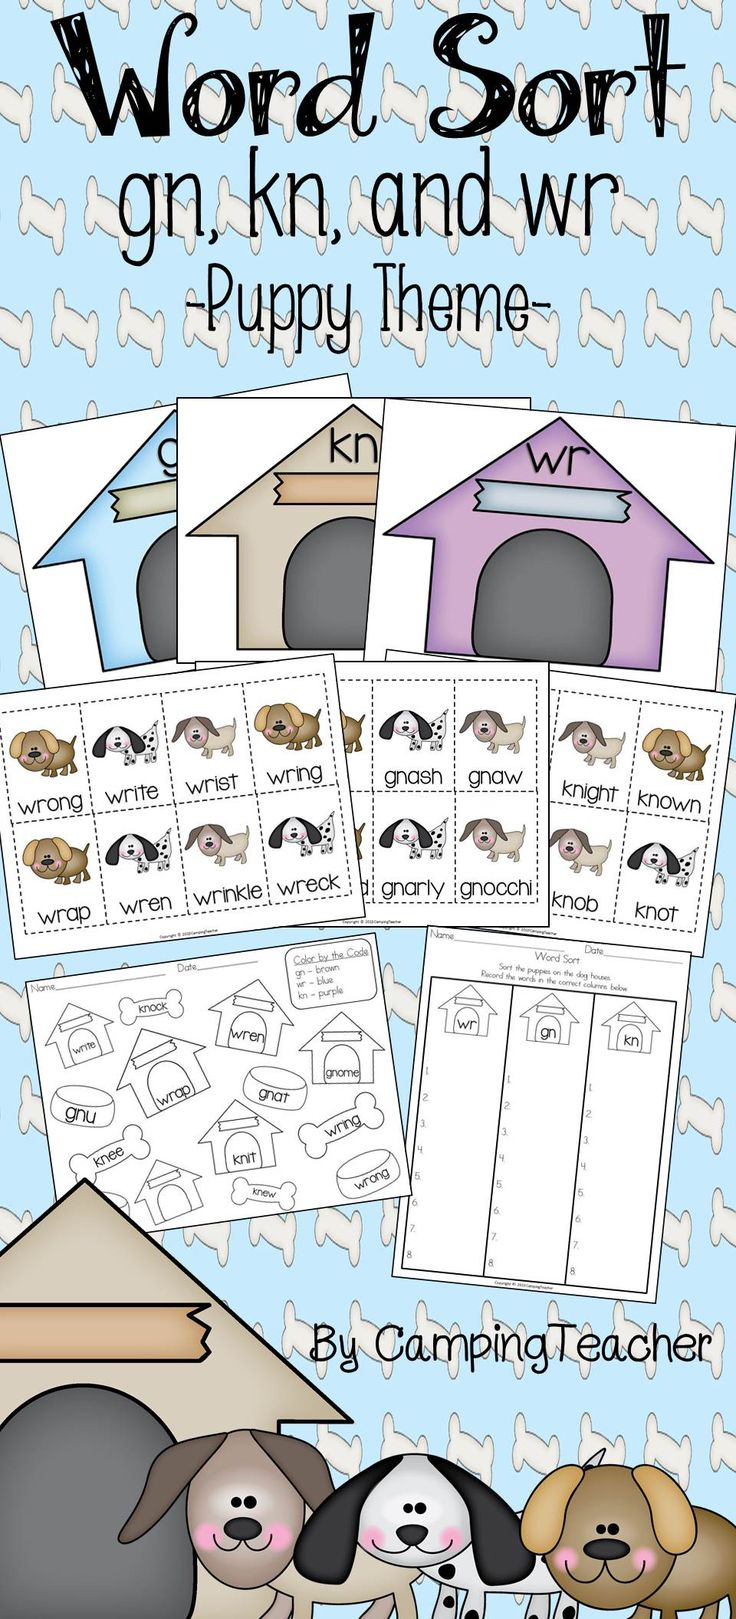 Silent letters gn, kn, wr word sort